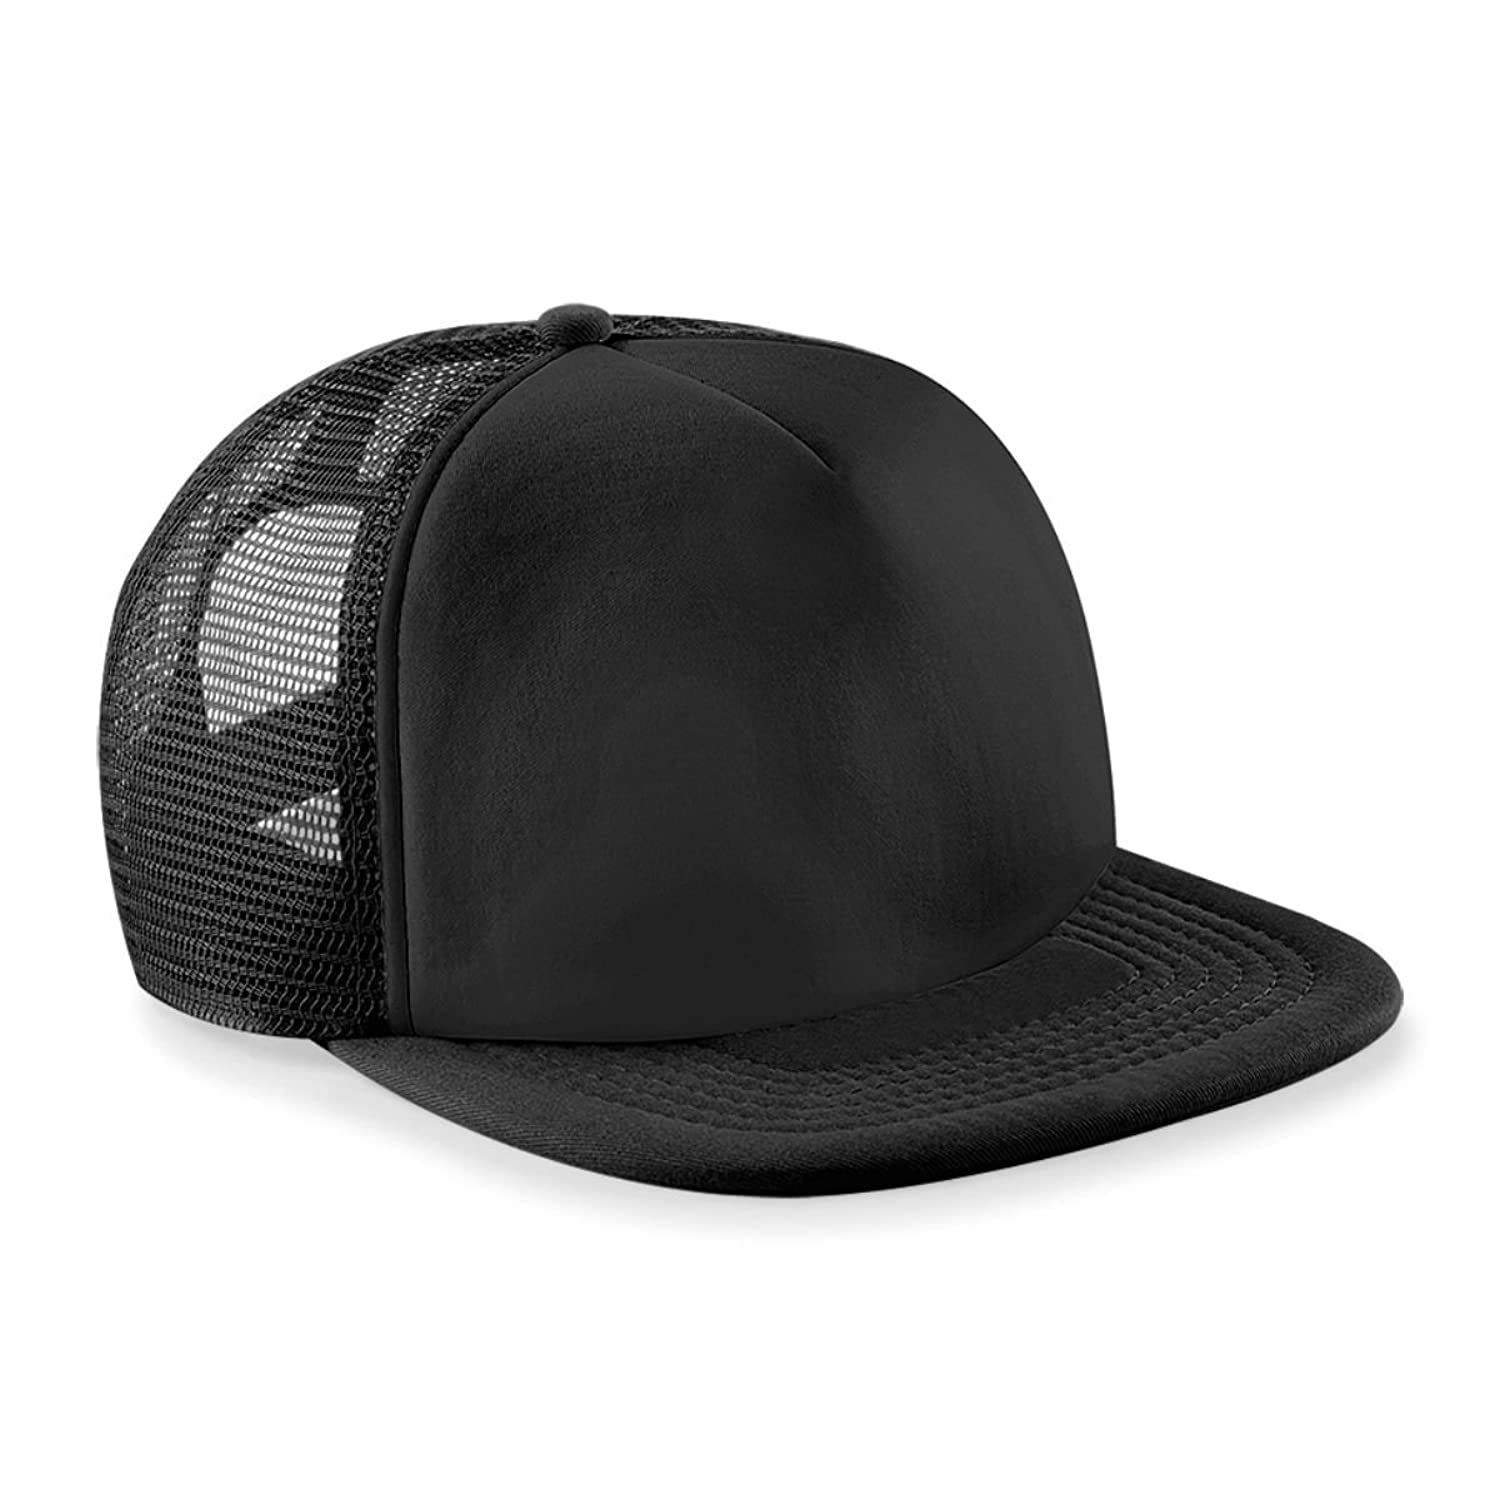 Vintage Snap Back Trucker Cap Black/black